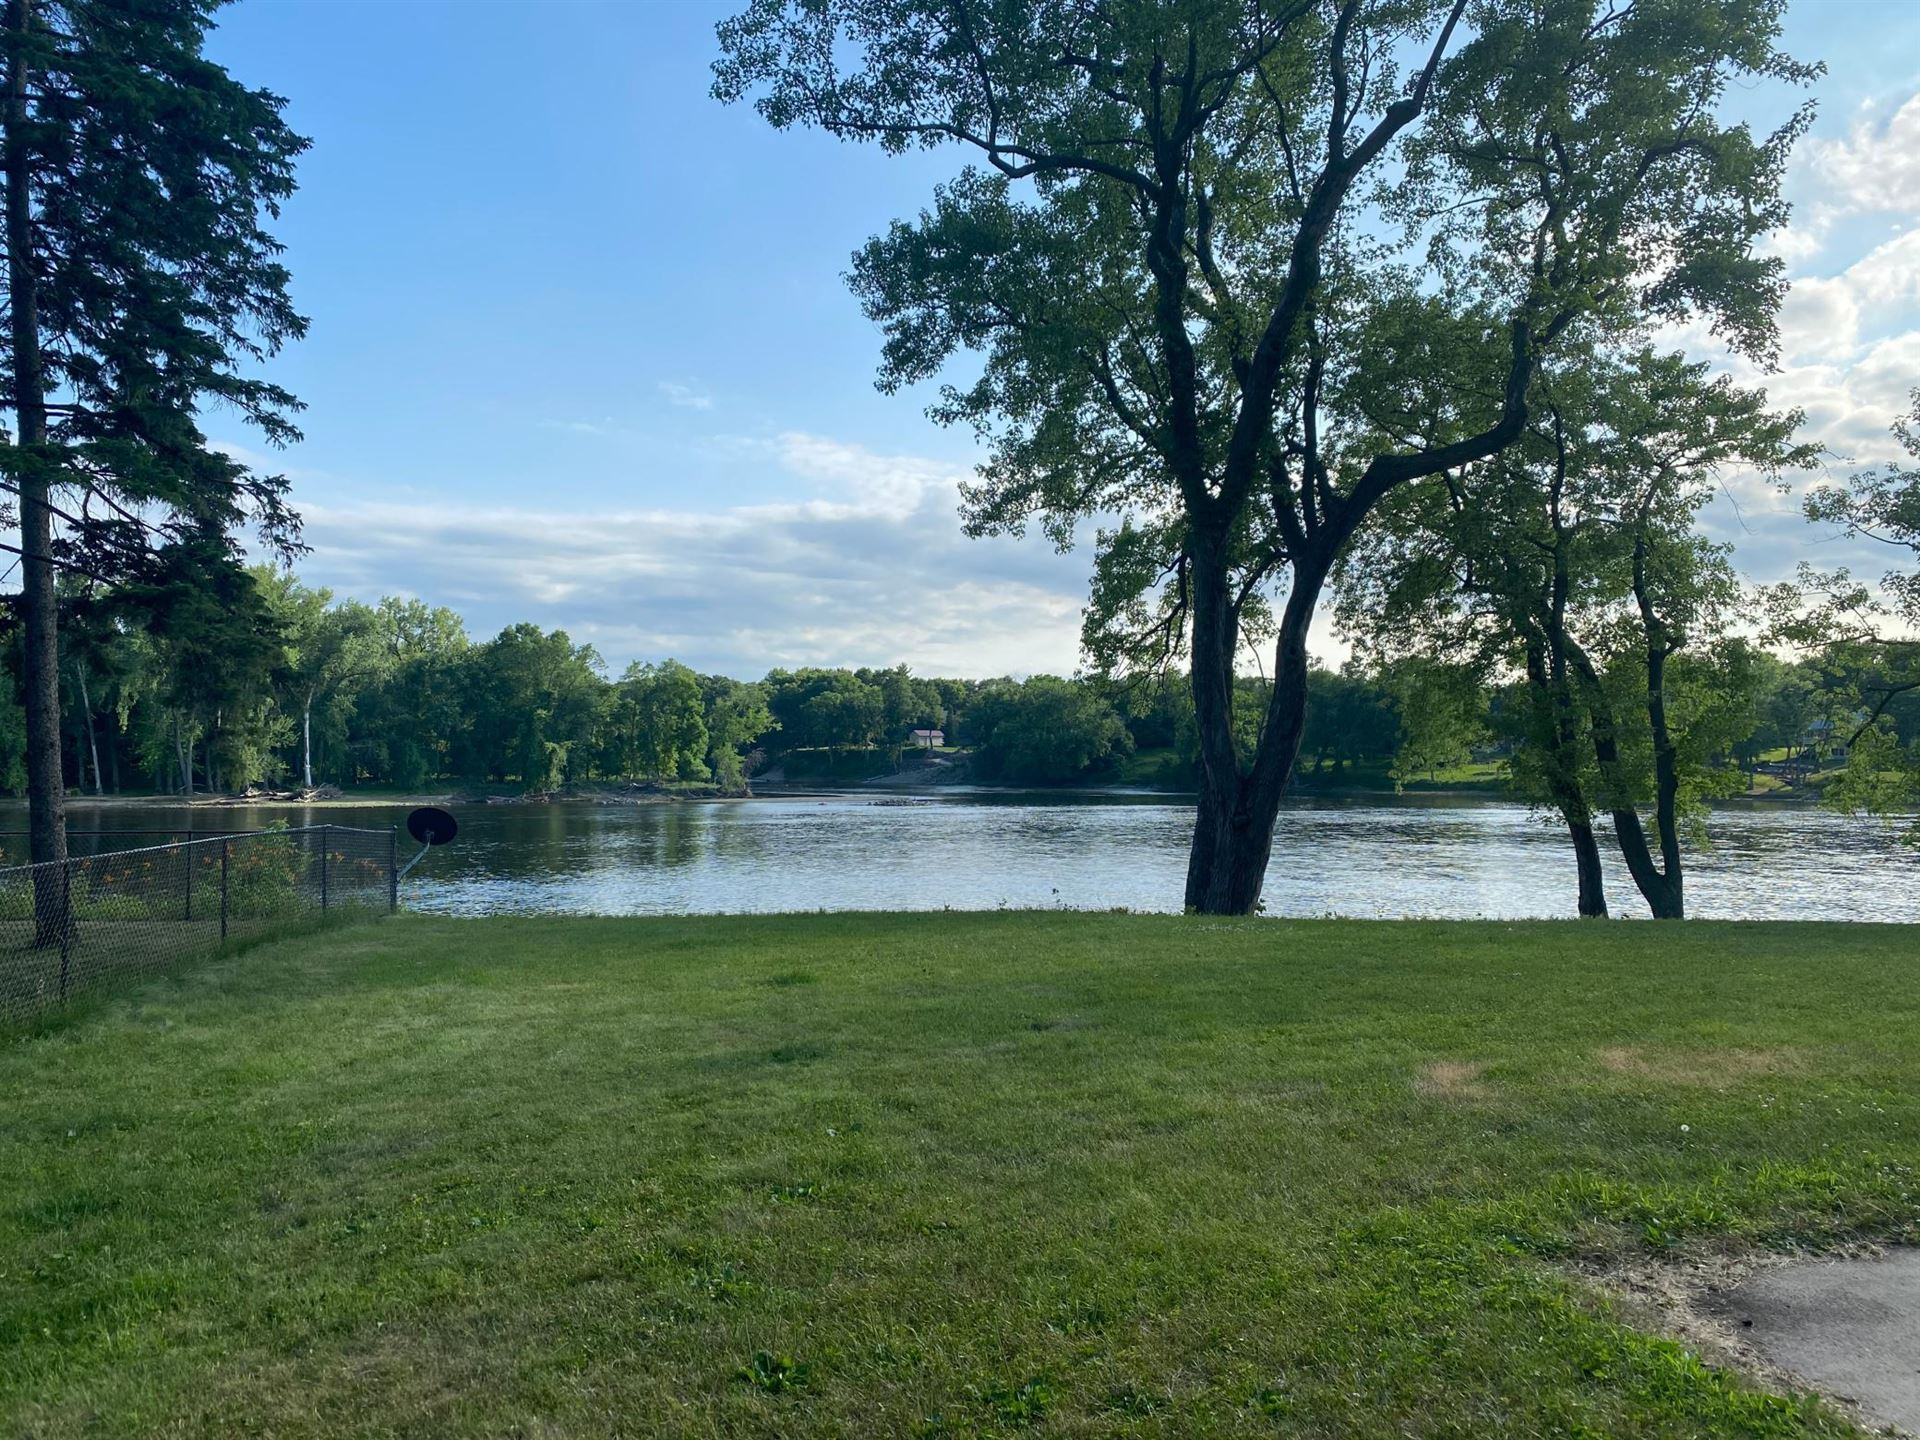 8408 Mississippi Boulevard NW, Coon Rapids, MN 55433 - #: 5562856